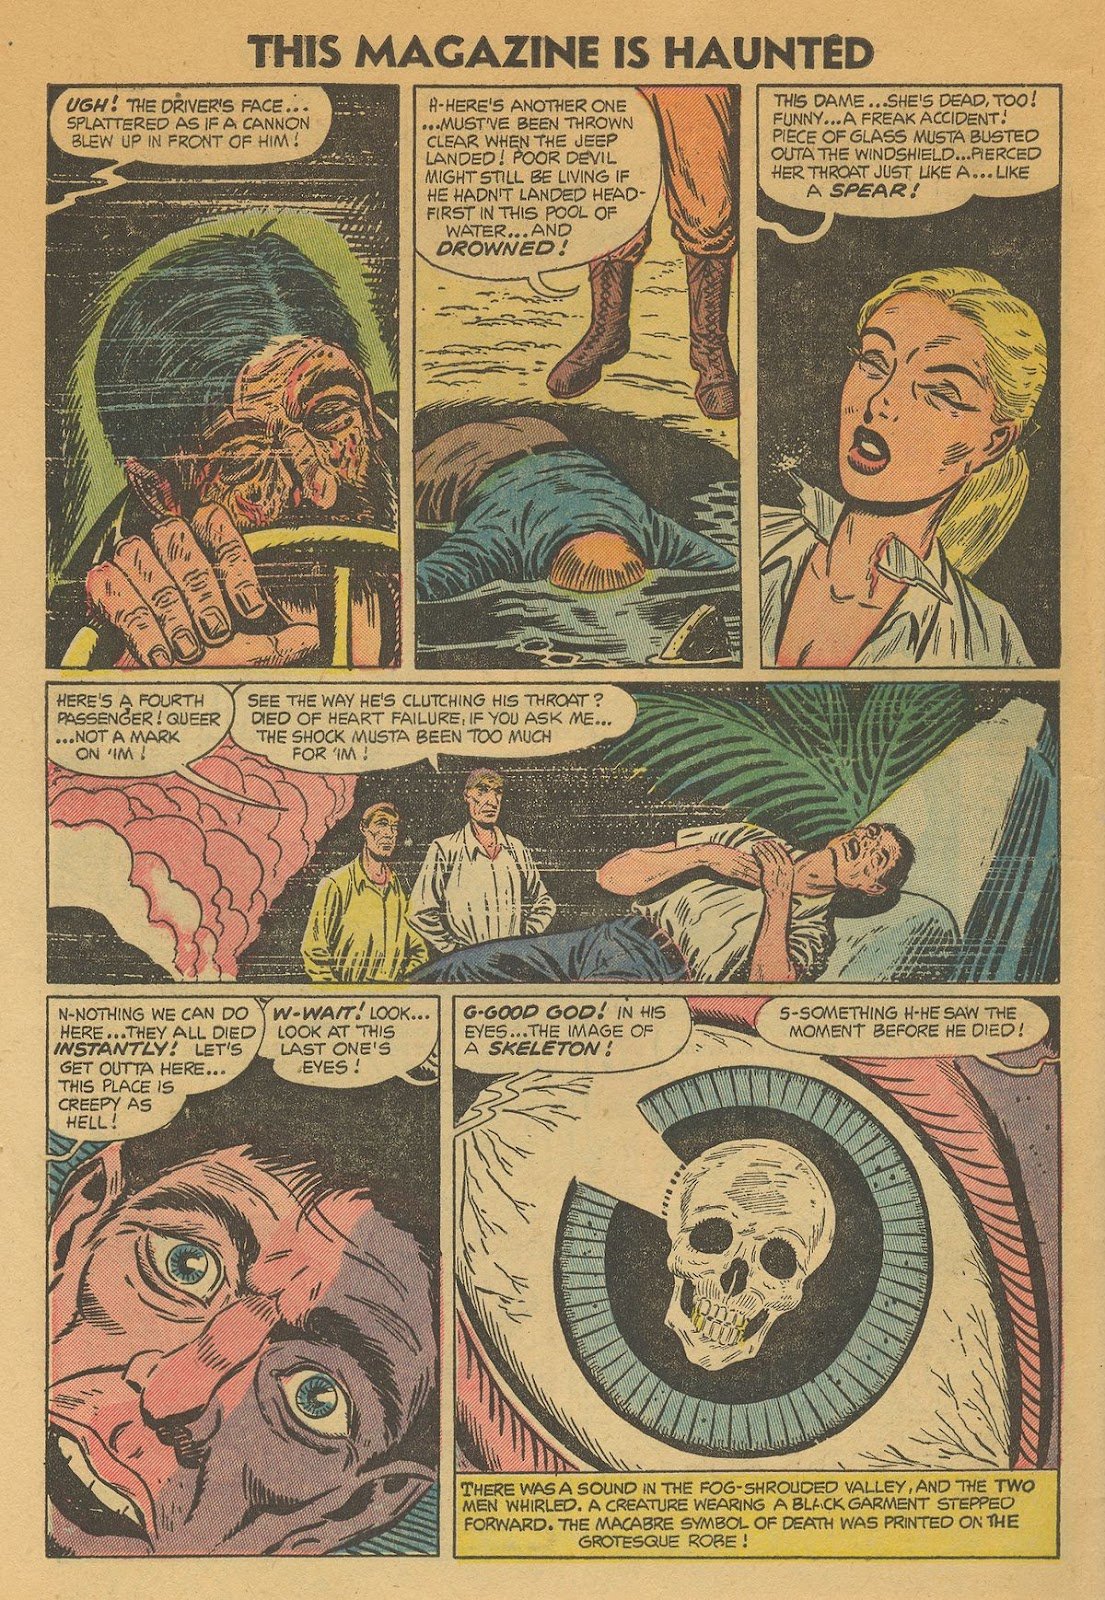 Read online This Magazine Is Haunted comic -  Issue #18 - 32